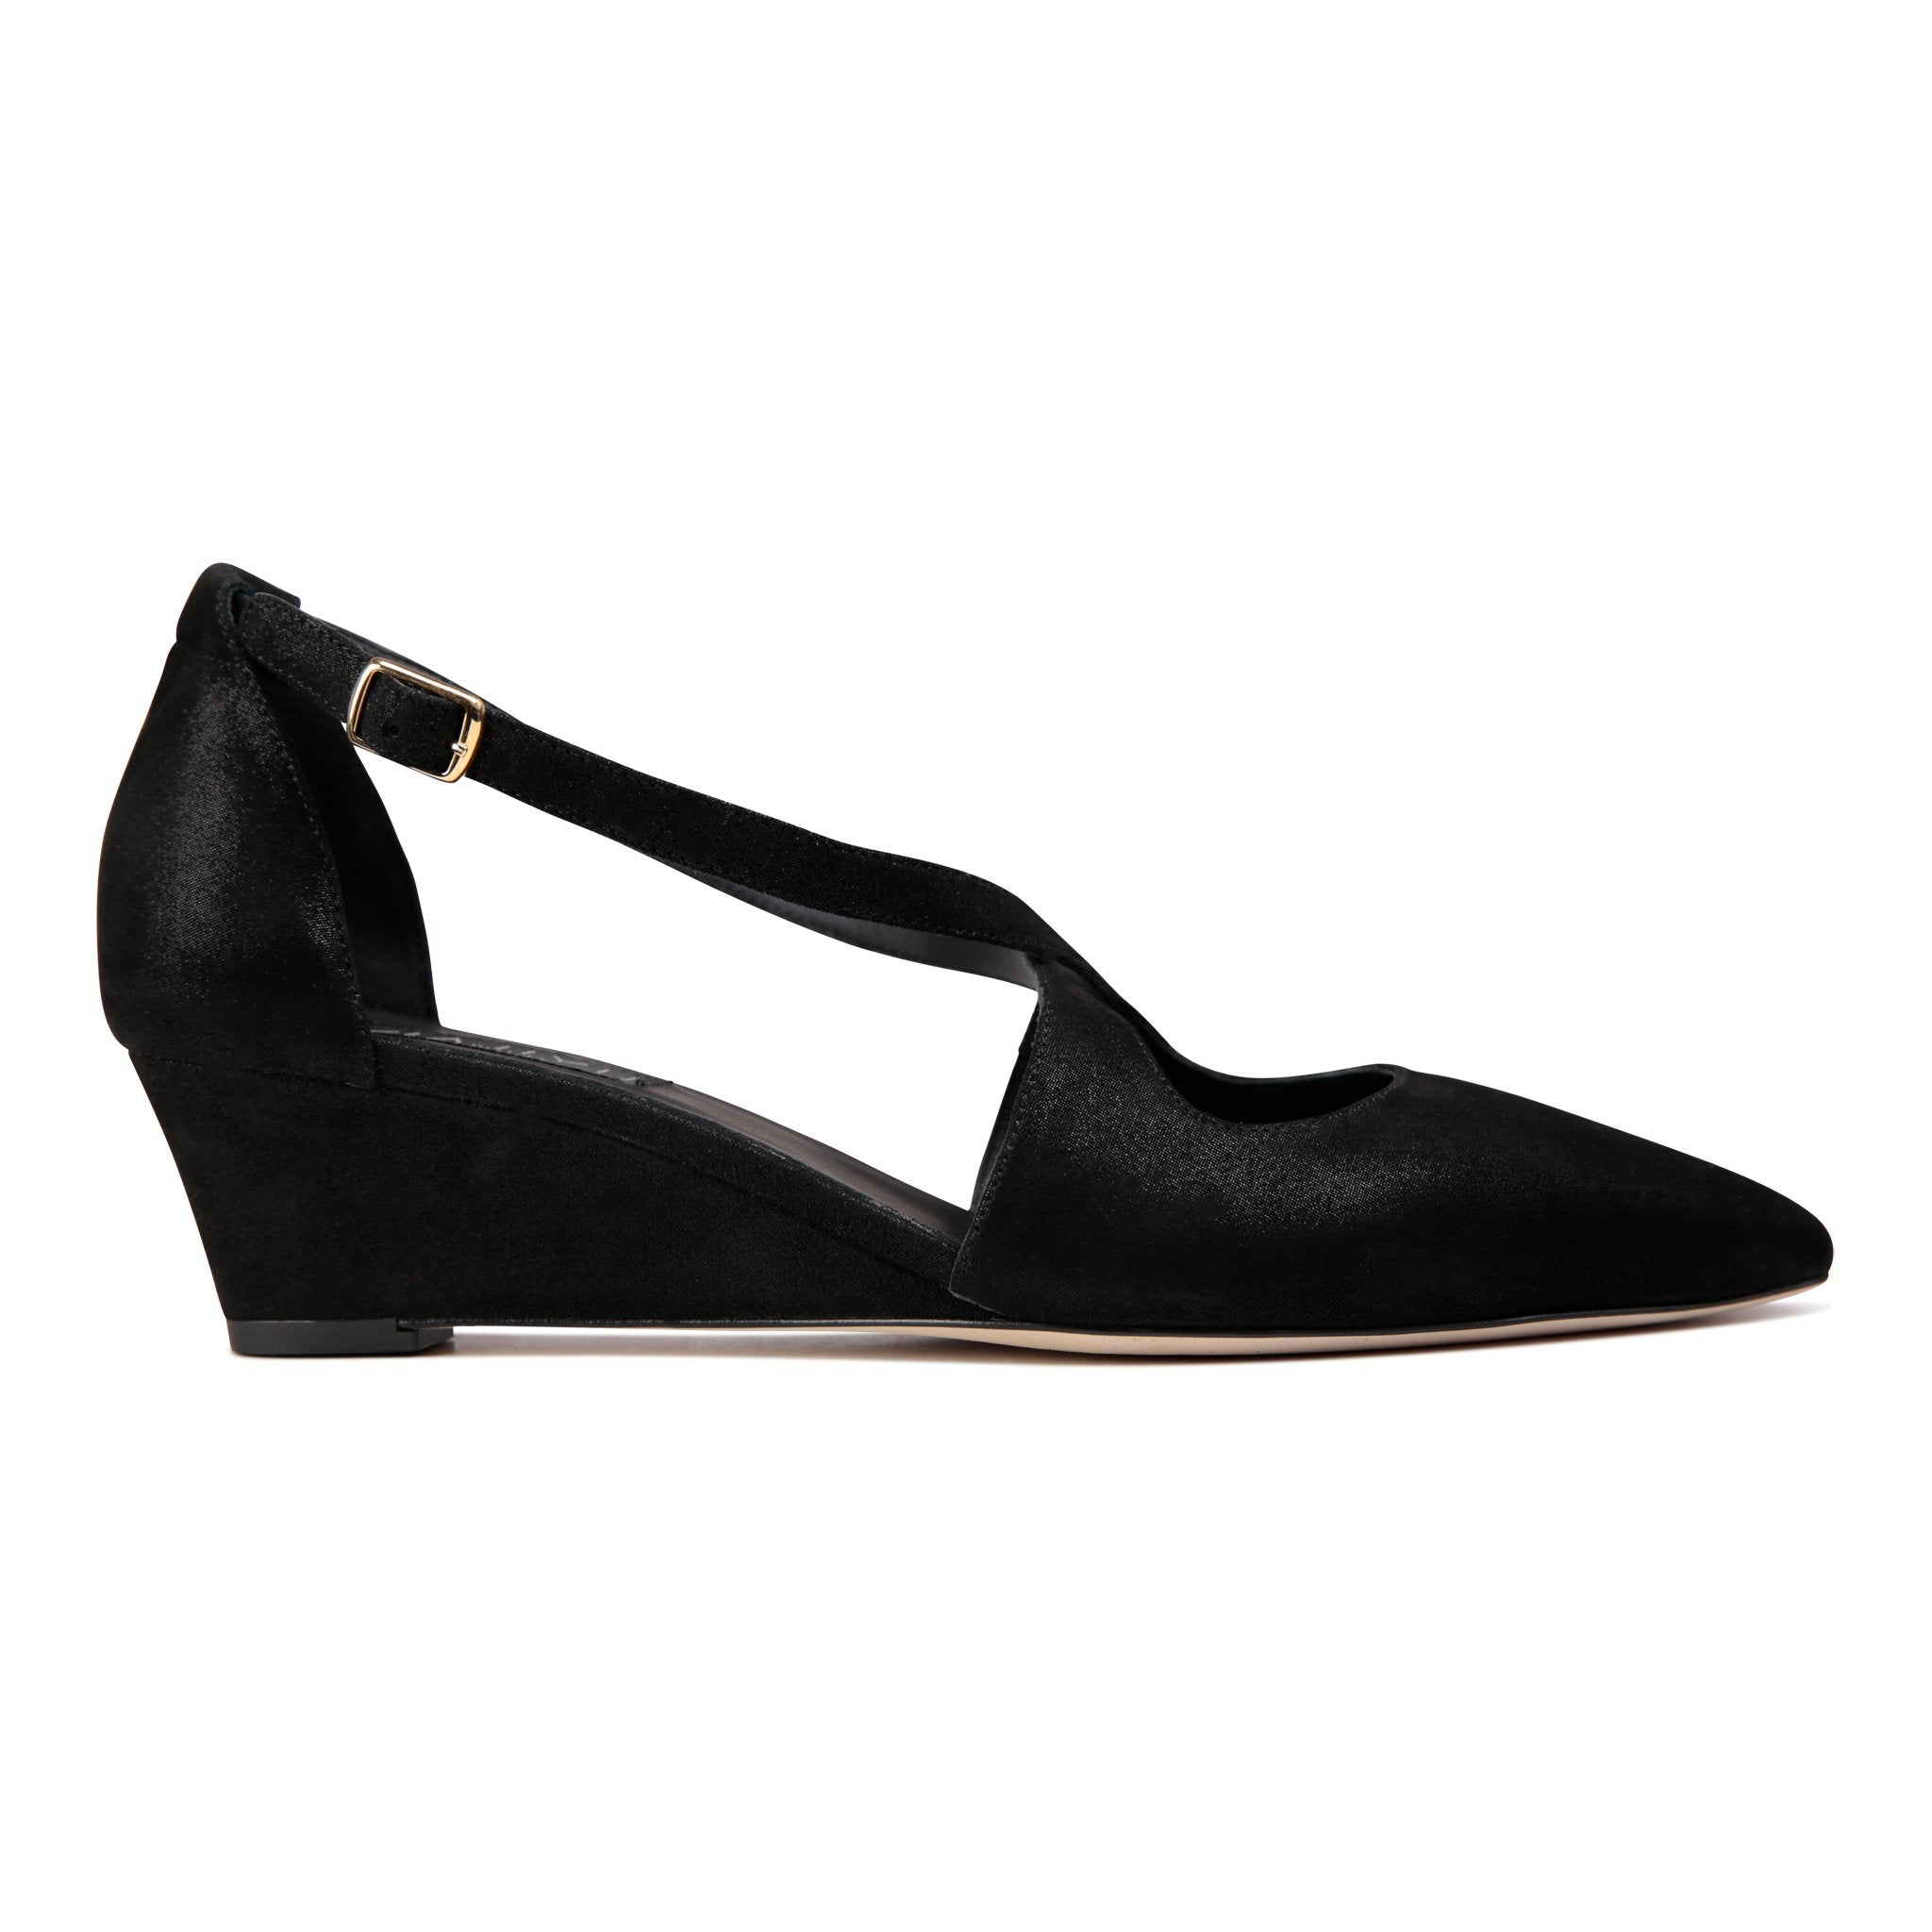 AREZZO - Hydra Nero, VIAJIYU - Women's Hand Made Sustainable Luxury Shoes. Made in Italy. Made to Order.